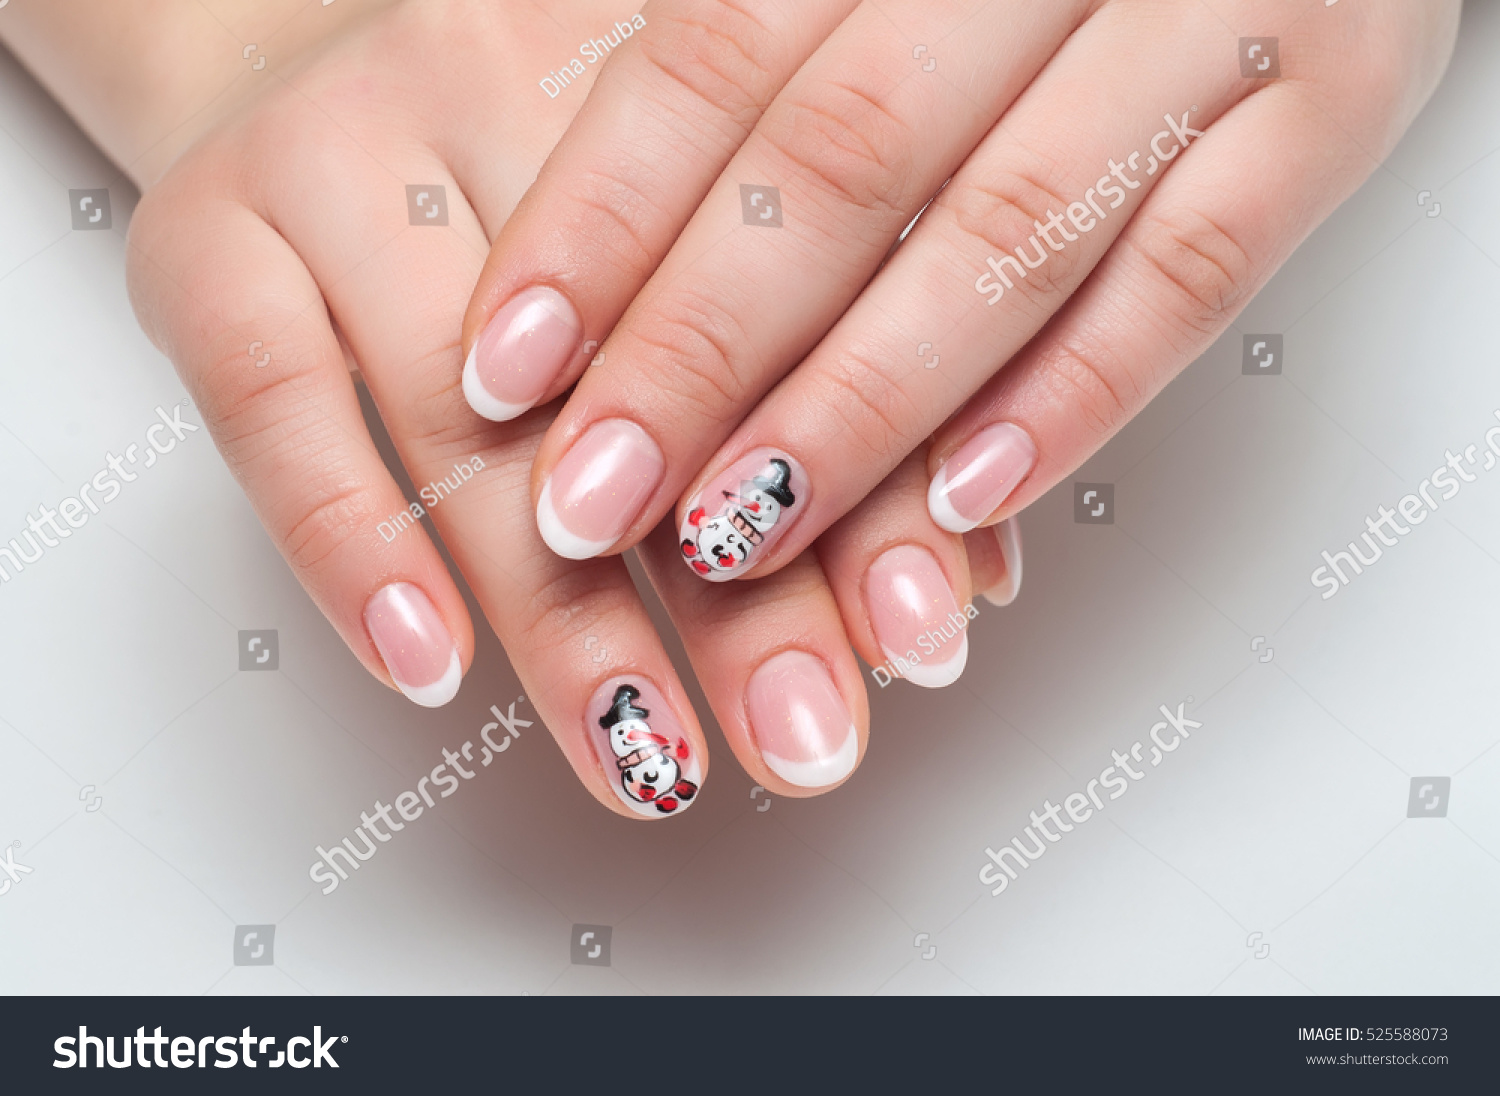 New Years French White Manicure Painted Stock Photo & Image (Royalty ...